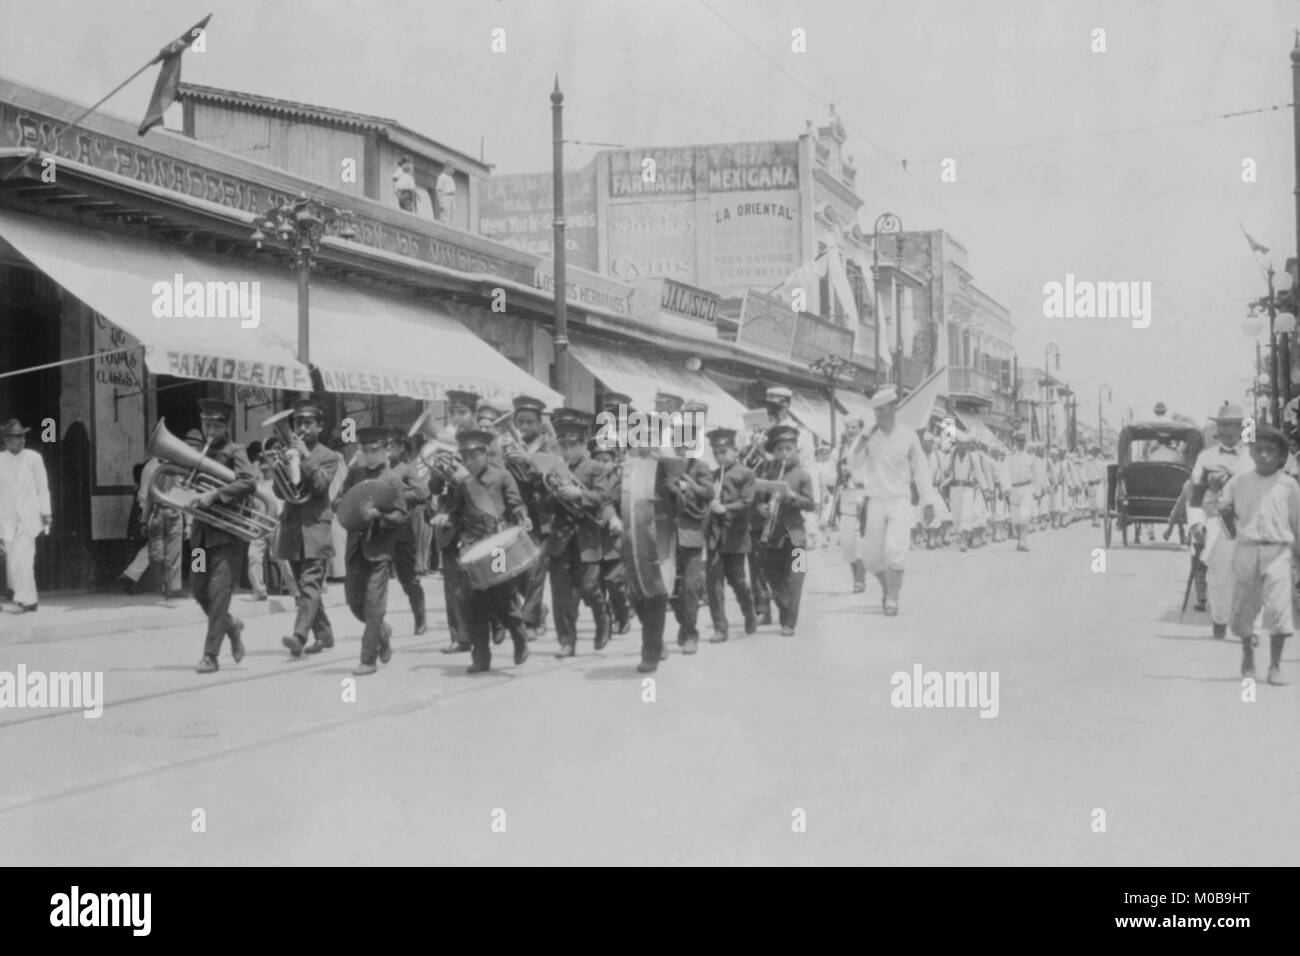 Mexican Band Plays Instruments in front of Marching Columns of U.S. Navy Sailors - Stock Image